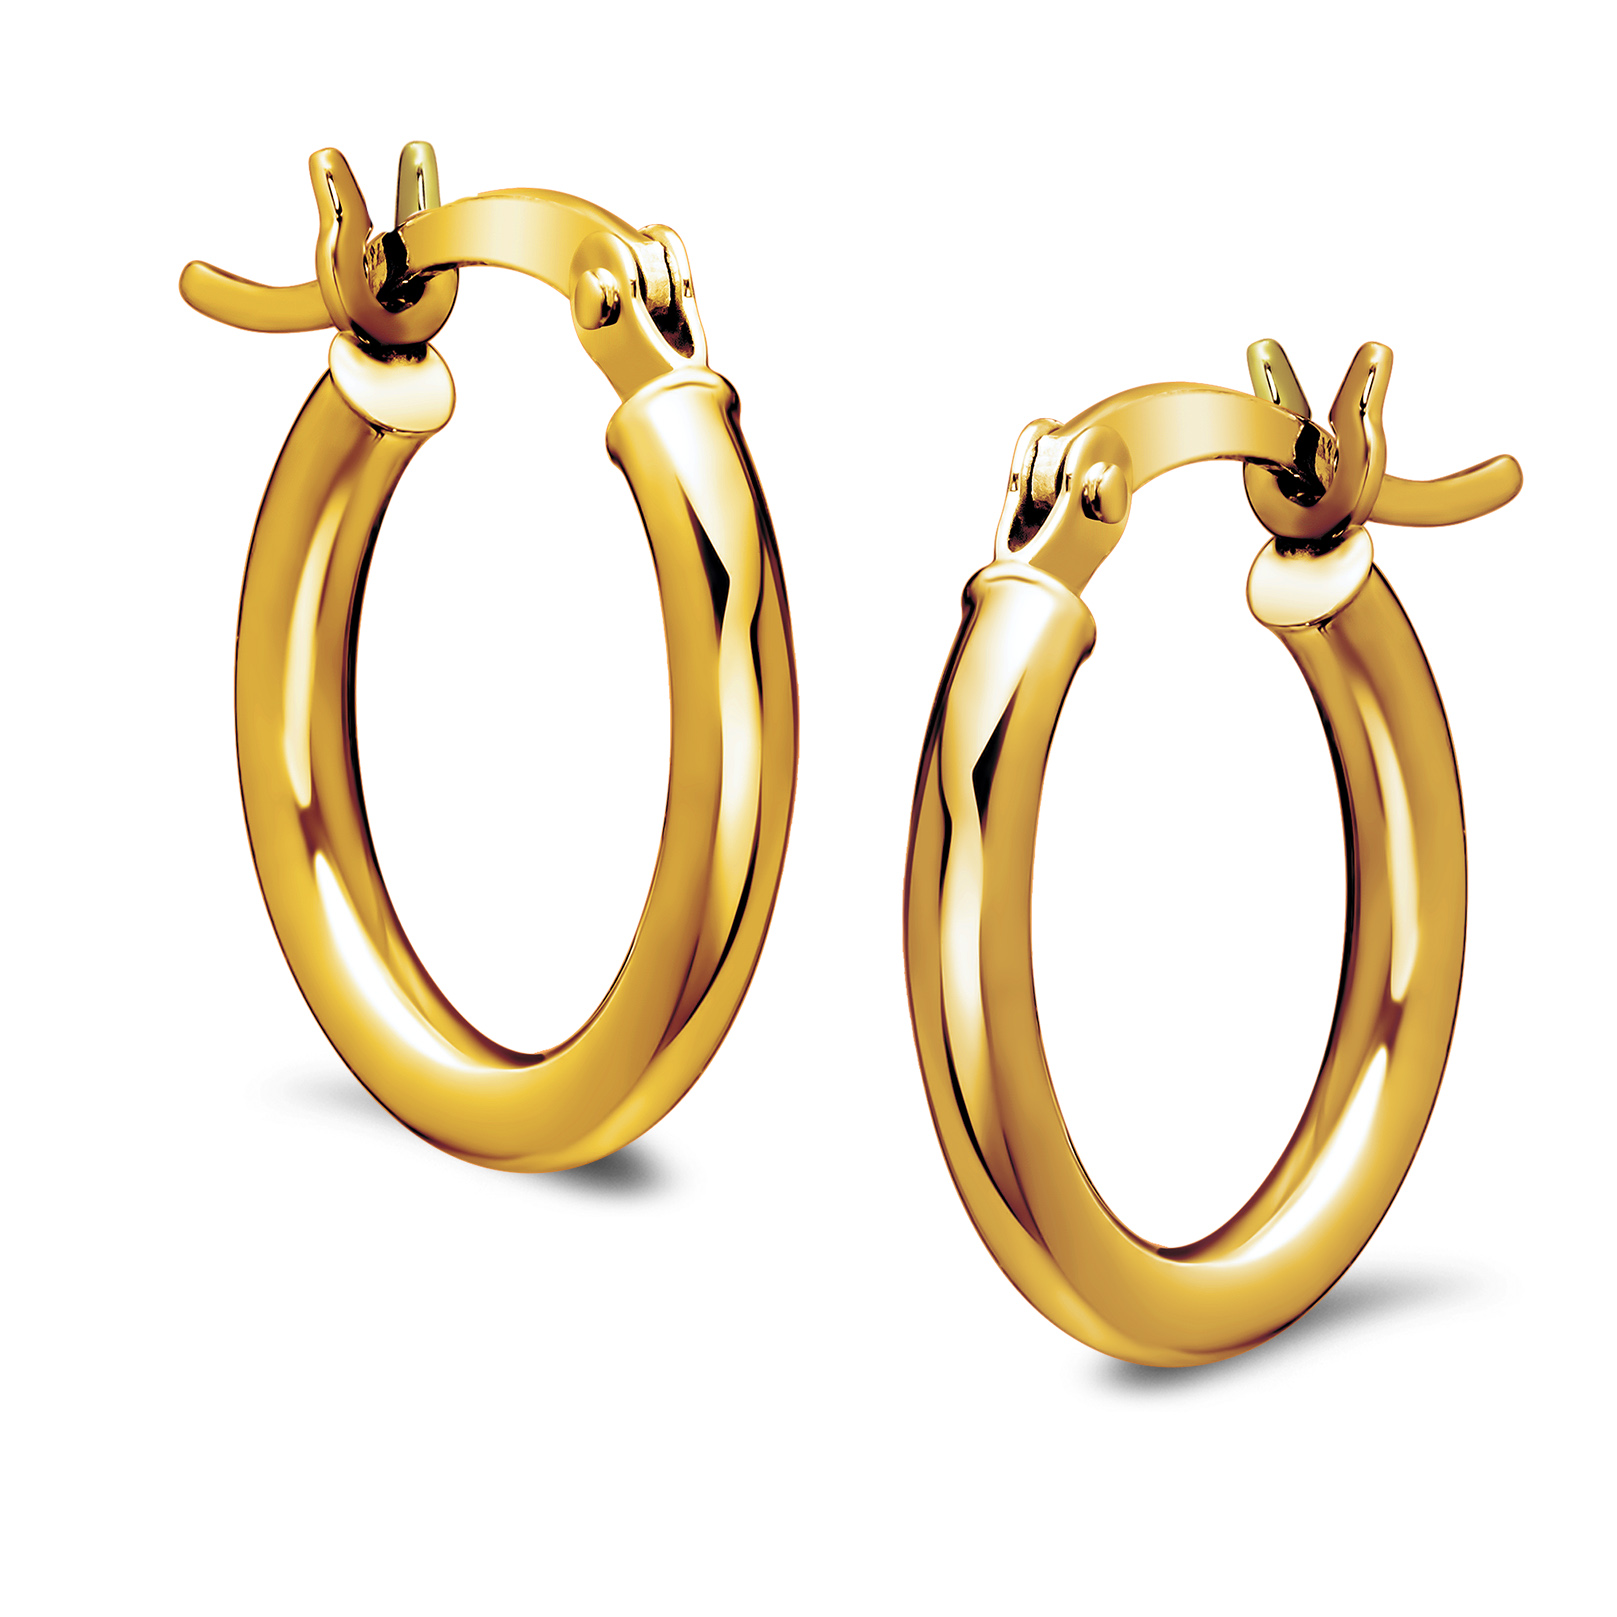 14k Gold Polished Hoop Earrings Gold Earrings Apmex